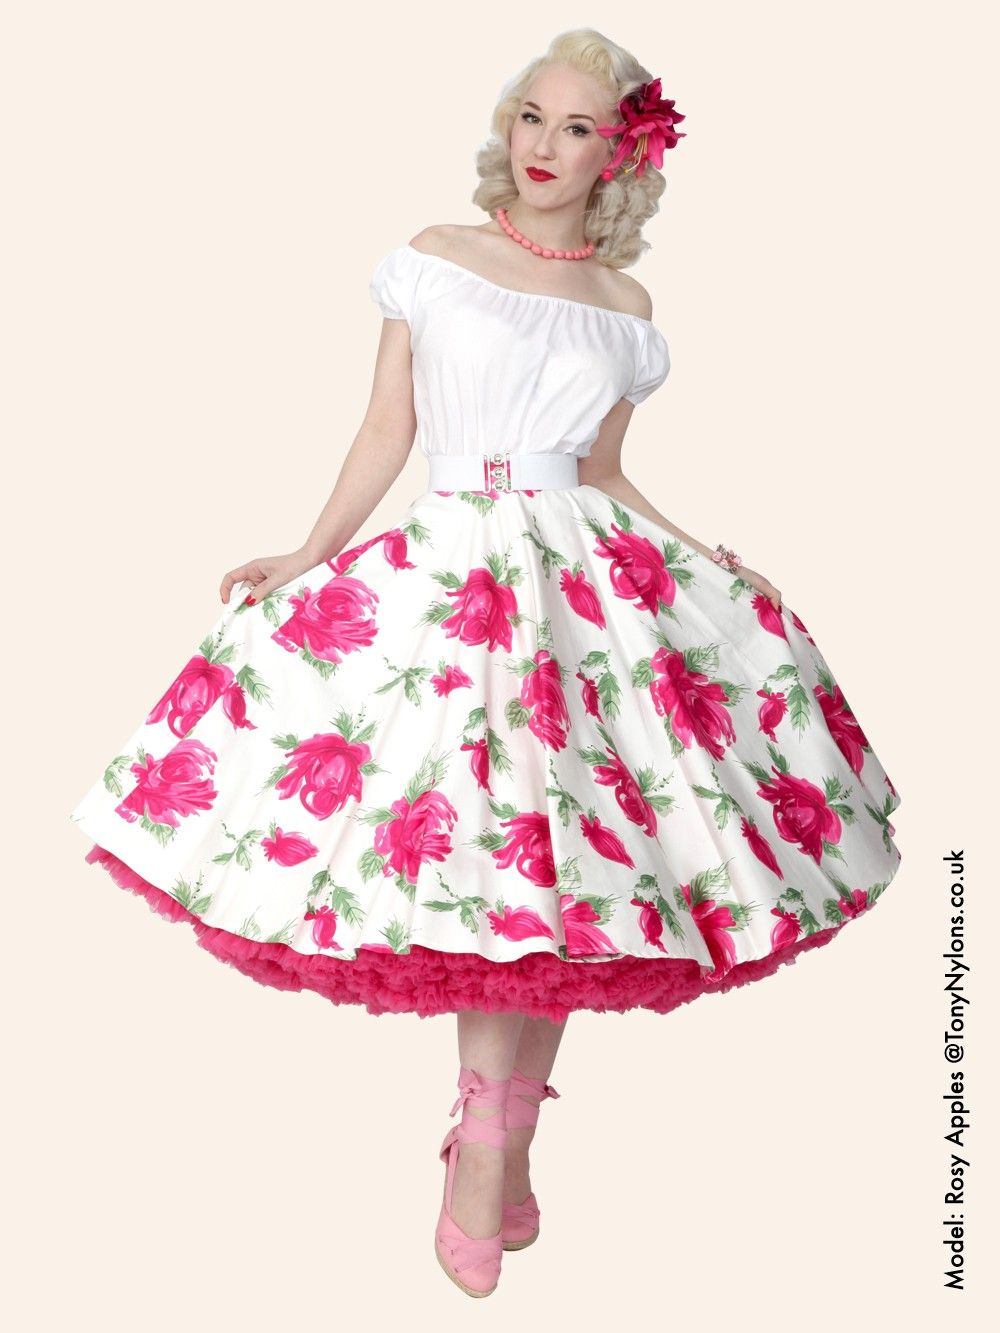 1950s Victory rose cerise circle skirt http://www.vivienofholloway.com/  #Vivienofholloway Vivienofhollowaywedding #VivienHolloway #VoH #Vintagereproduction #madeinlondon #1950sstyle #1950sfashion #1950s #1950sglamour #pinupgirl #pinup #rockabilly #rockabillygirl #rockabillyclothing #pinupfashion #1950scircleskirt #floralskirt